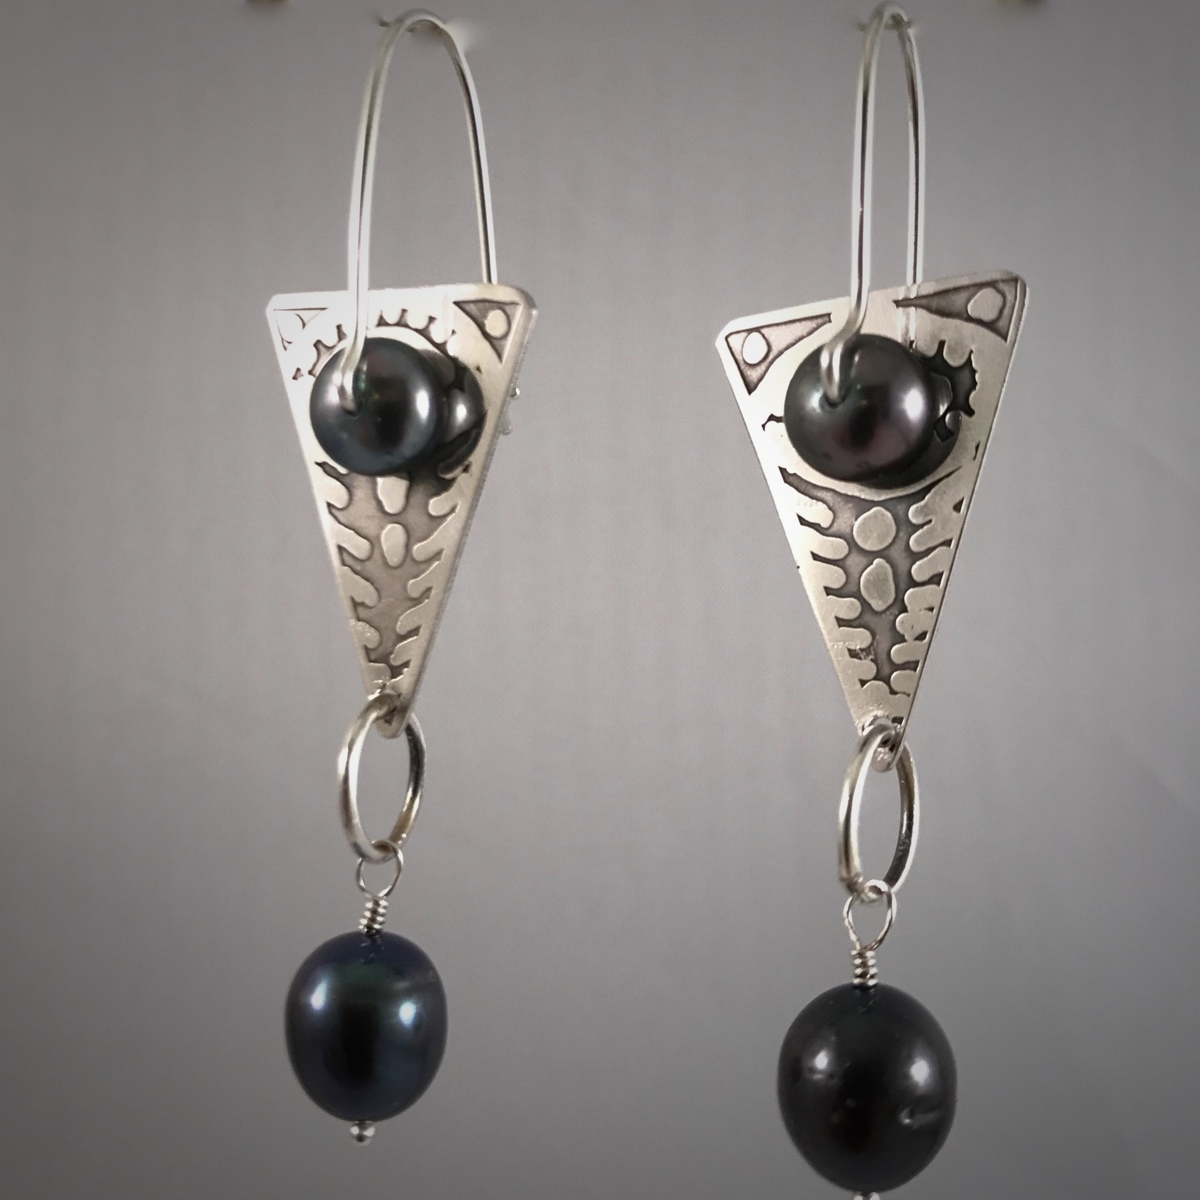 Kinetic Etched Silver Earrings Series #2 (large view)